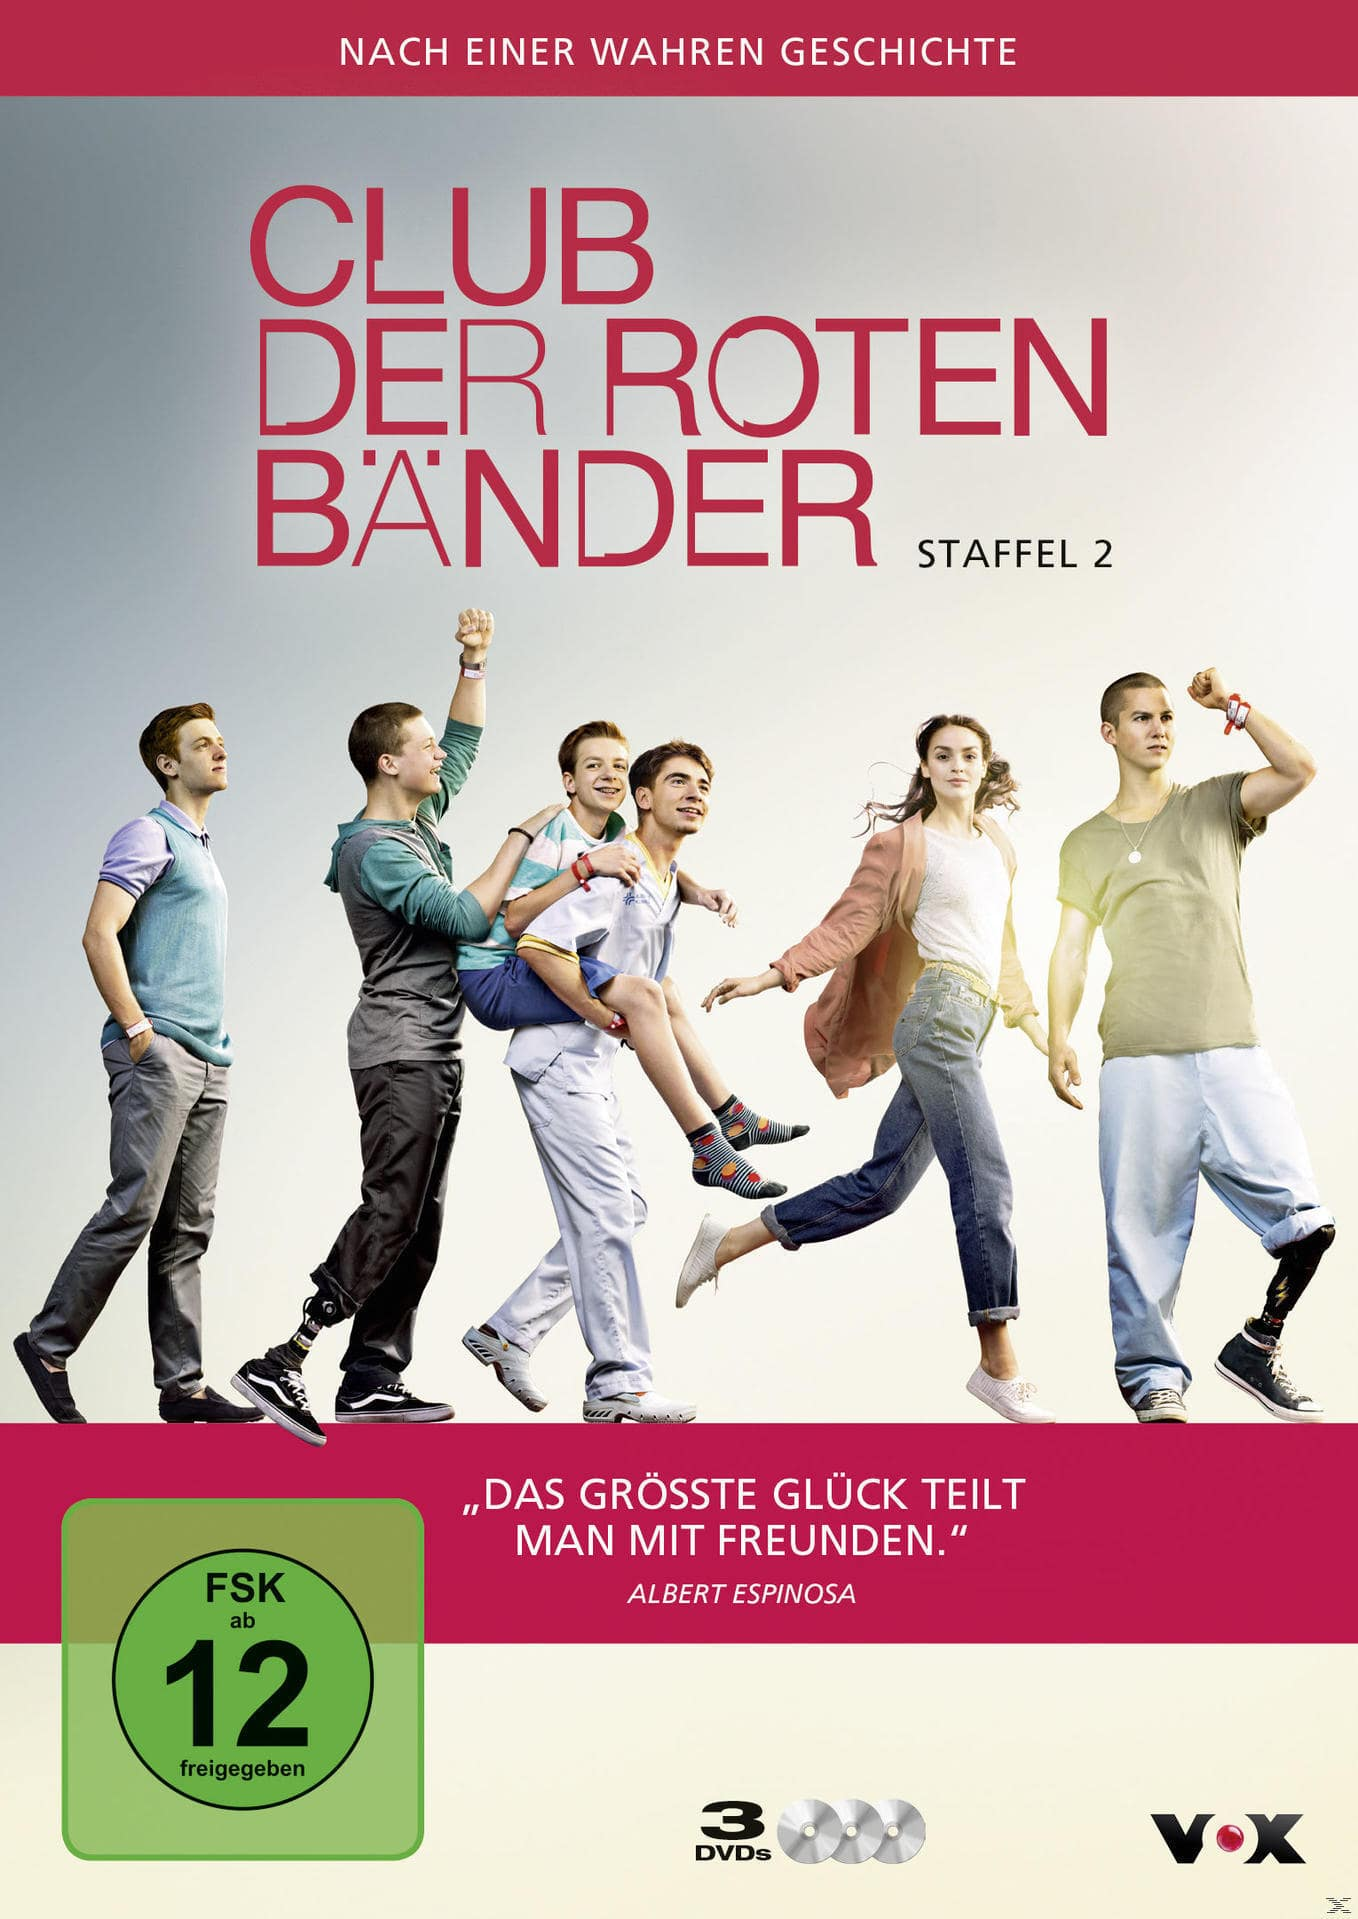 Club Der Roten Bänder Dvd Box